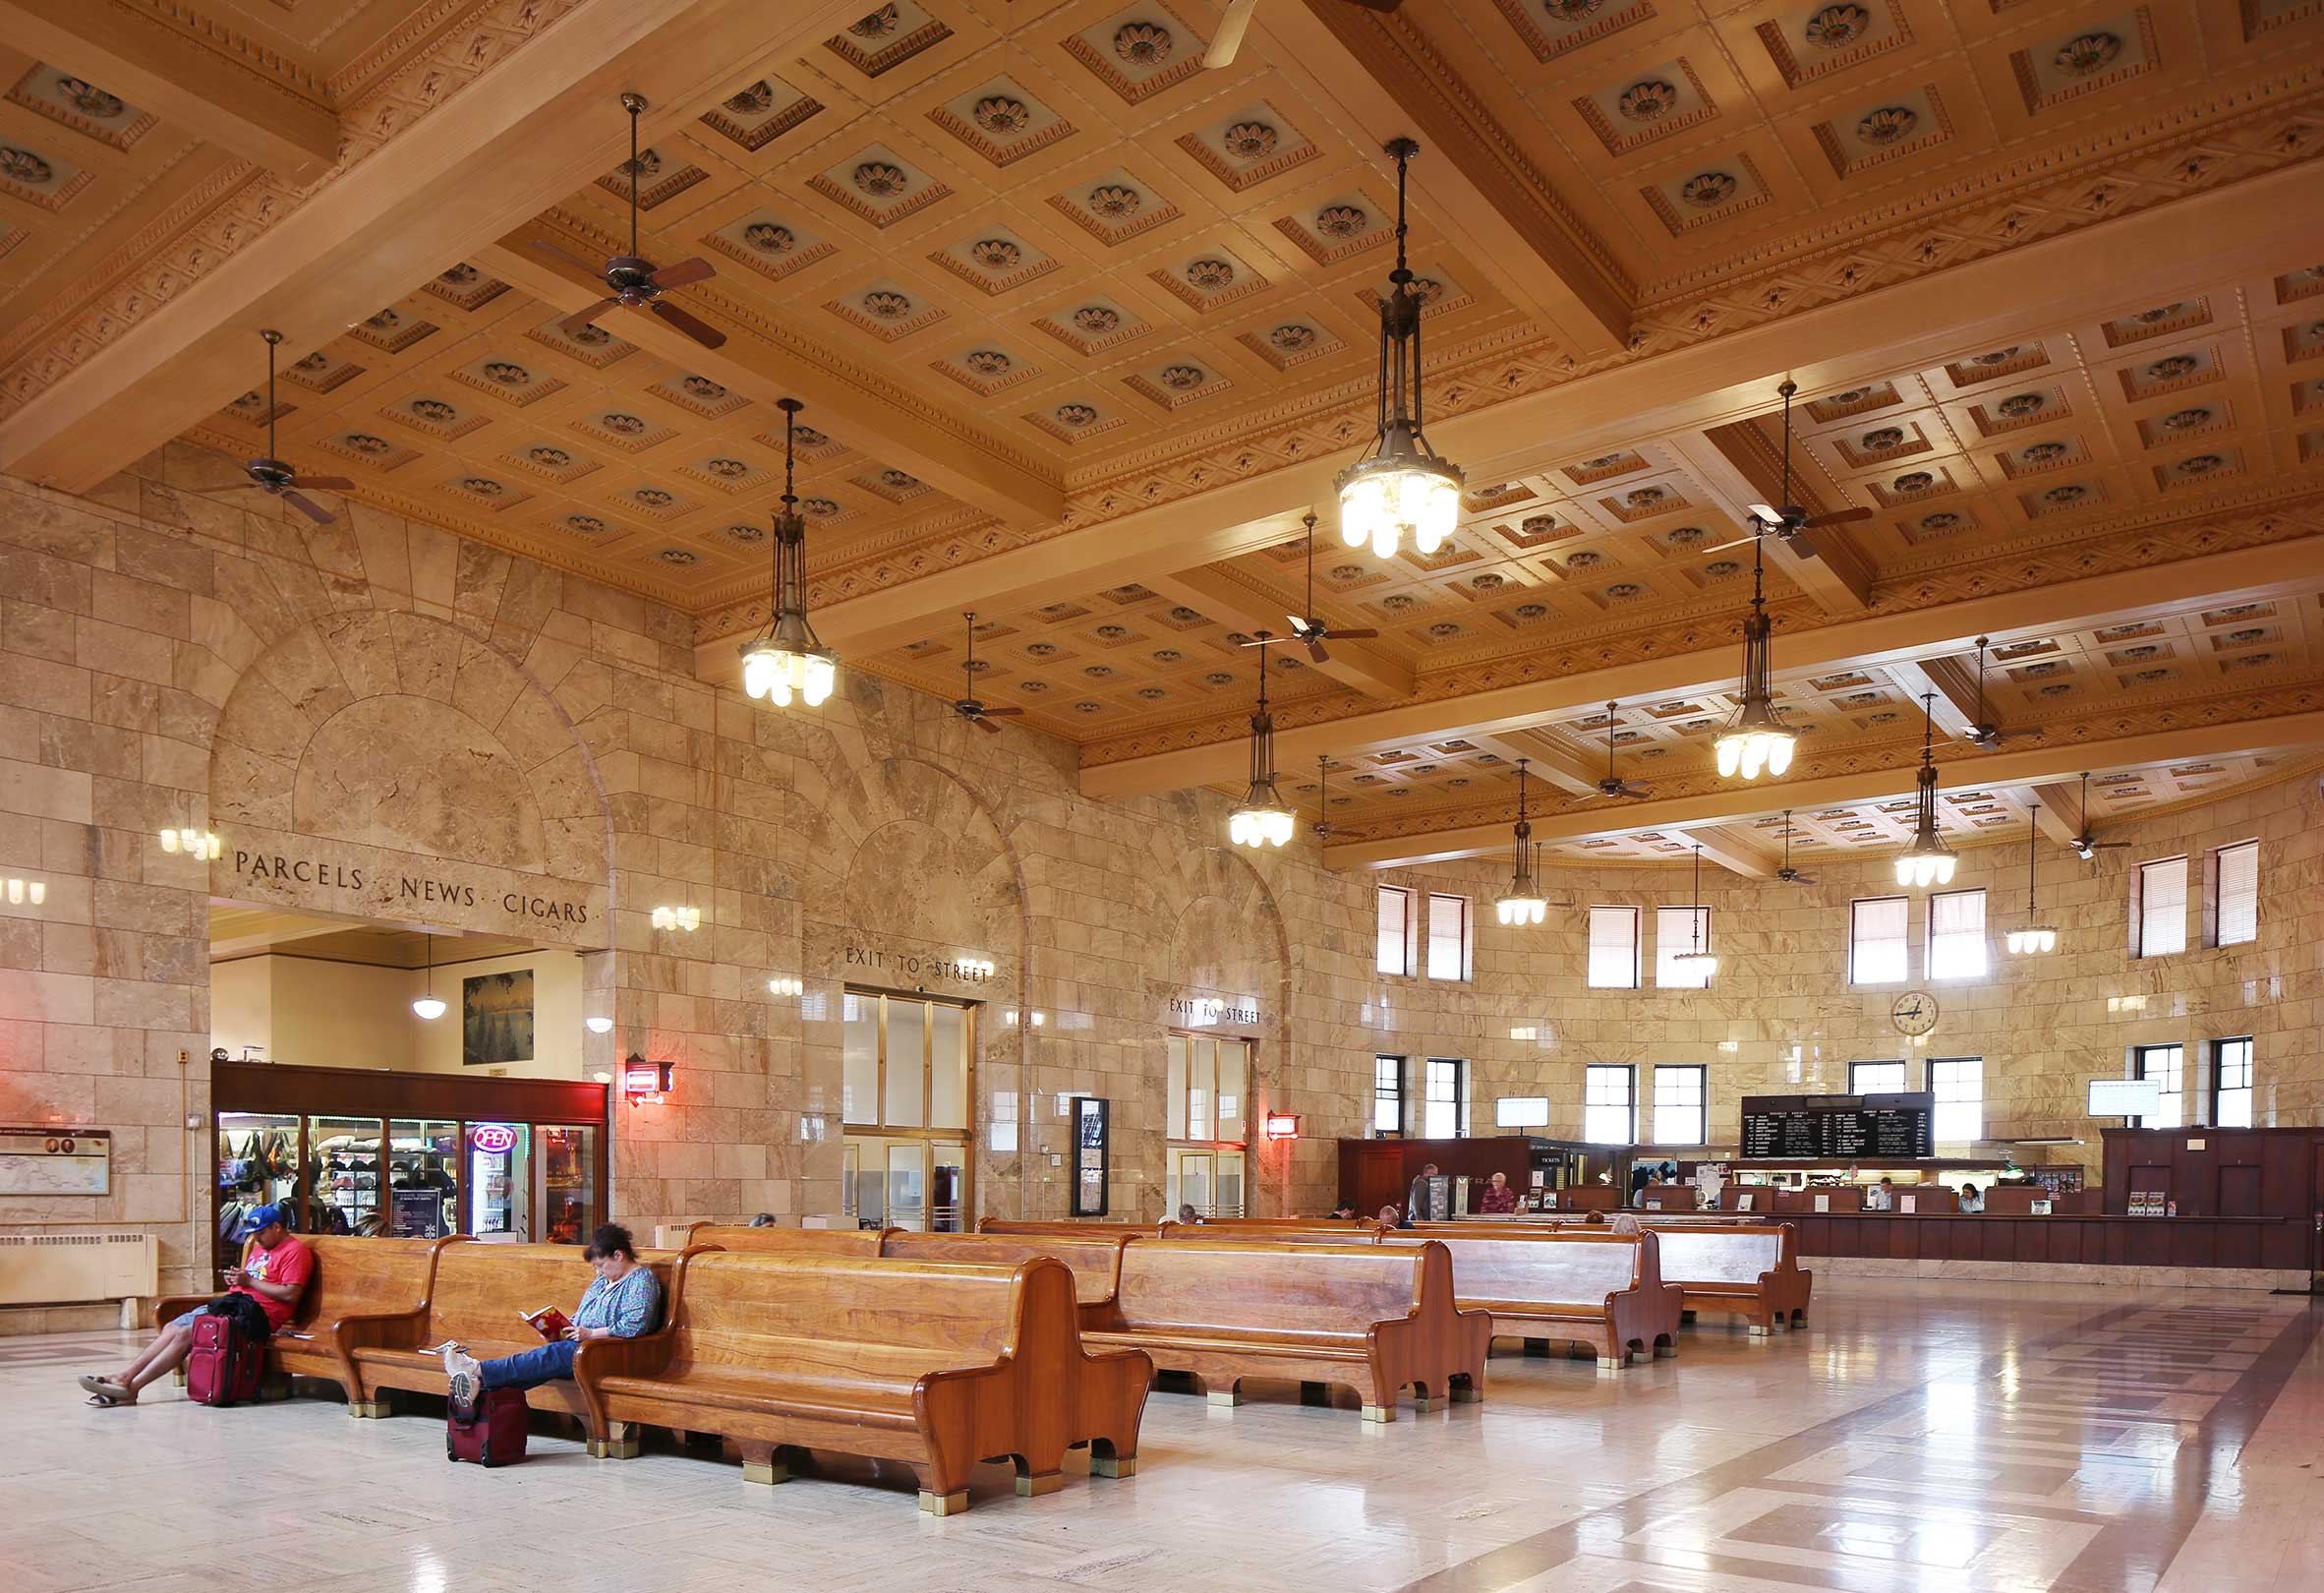 Historic Lobby of Portland Union Station, Portland Oregon, with Detailed Ceilings and Marble Floor